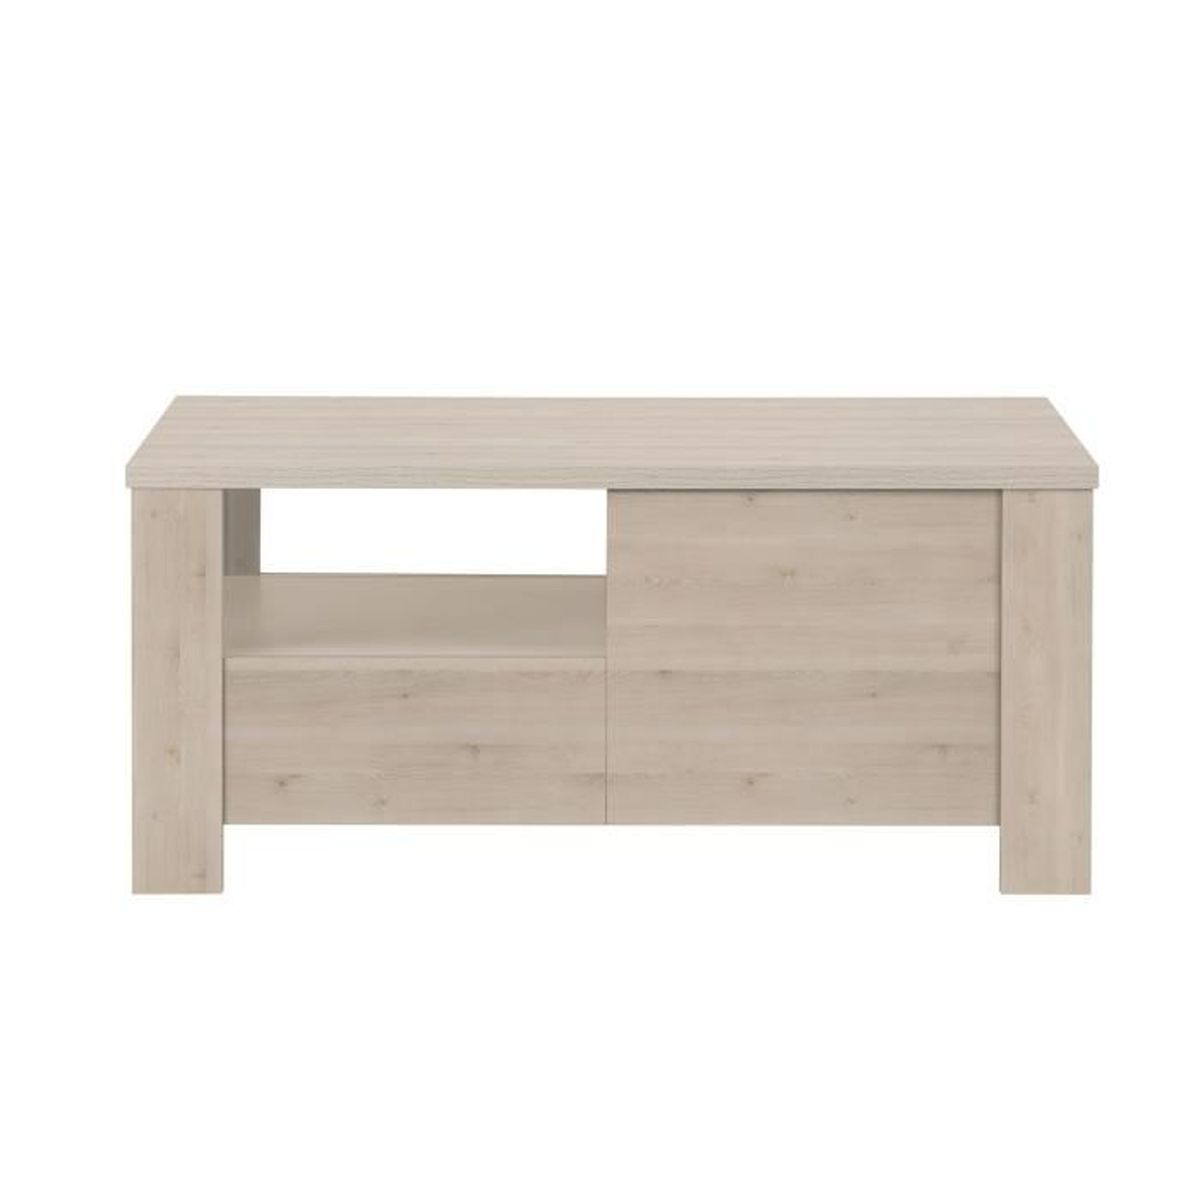 Sha pin table basse 2 tiroirs coloris bois blanchi for Table basse bois blanchi